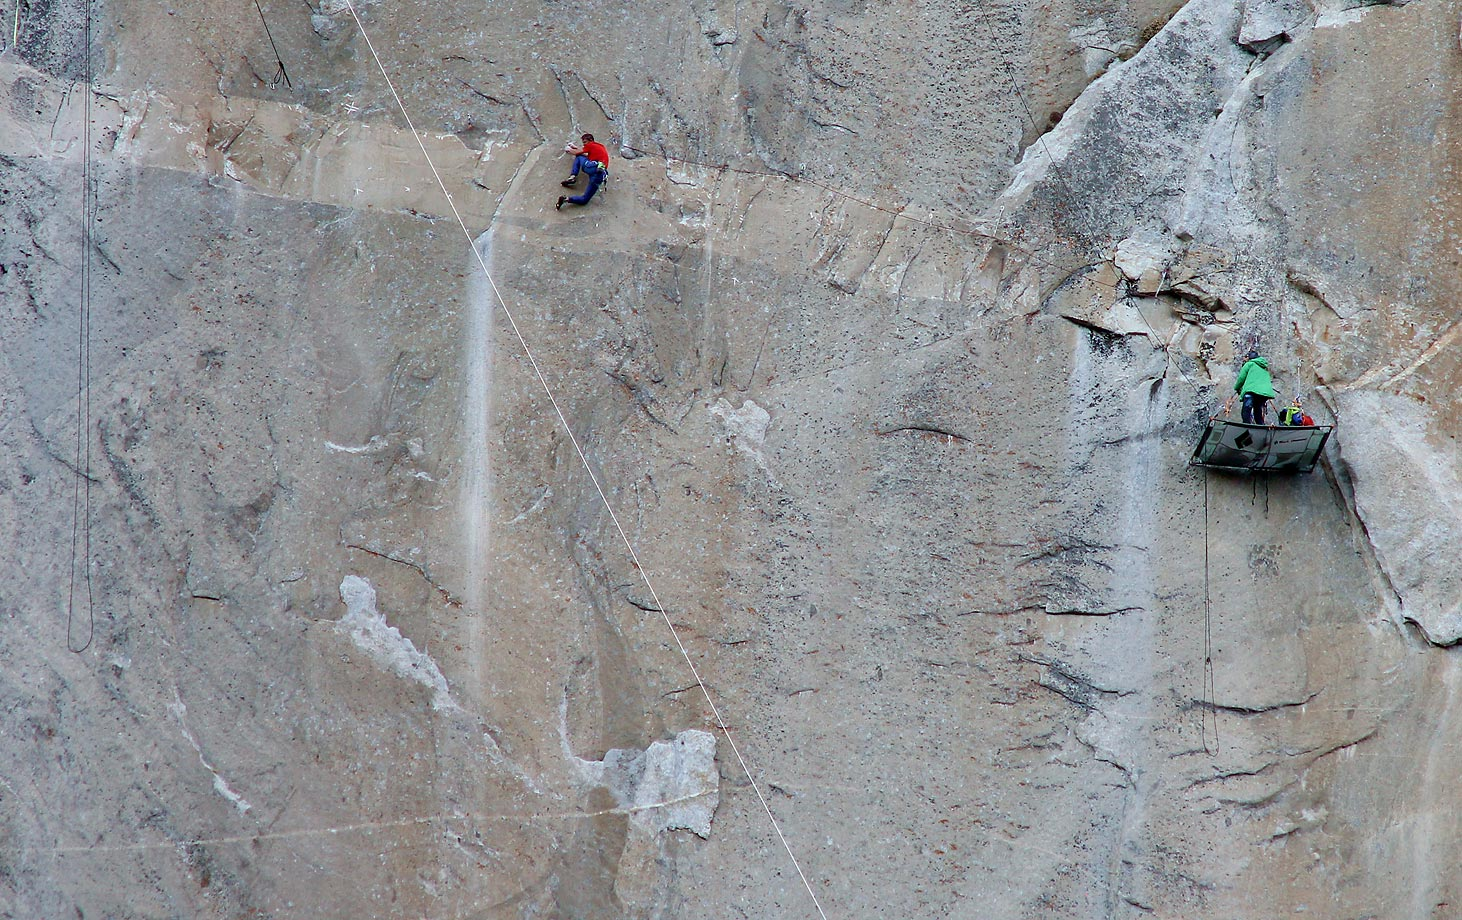 Tommy Caldwell (in red) Climbing on Pitch 14 – Kevin belaying in green.